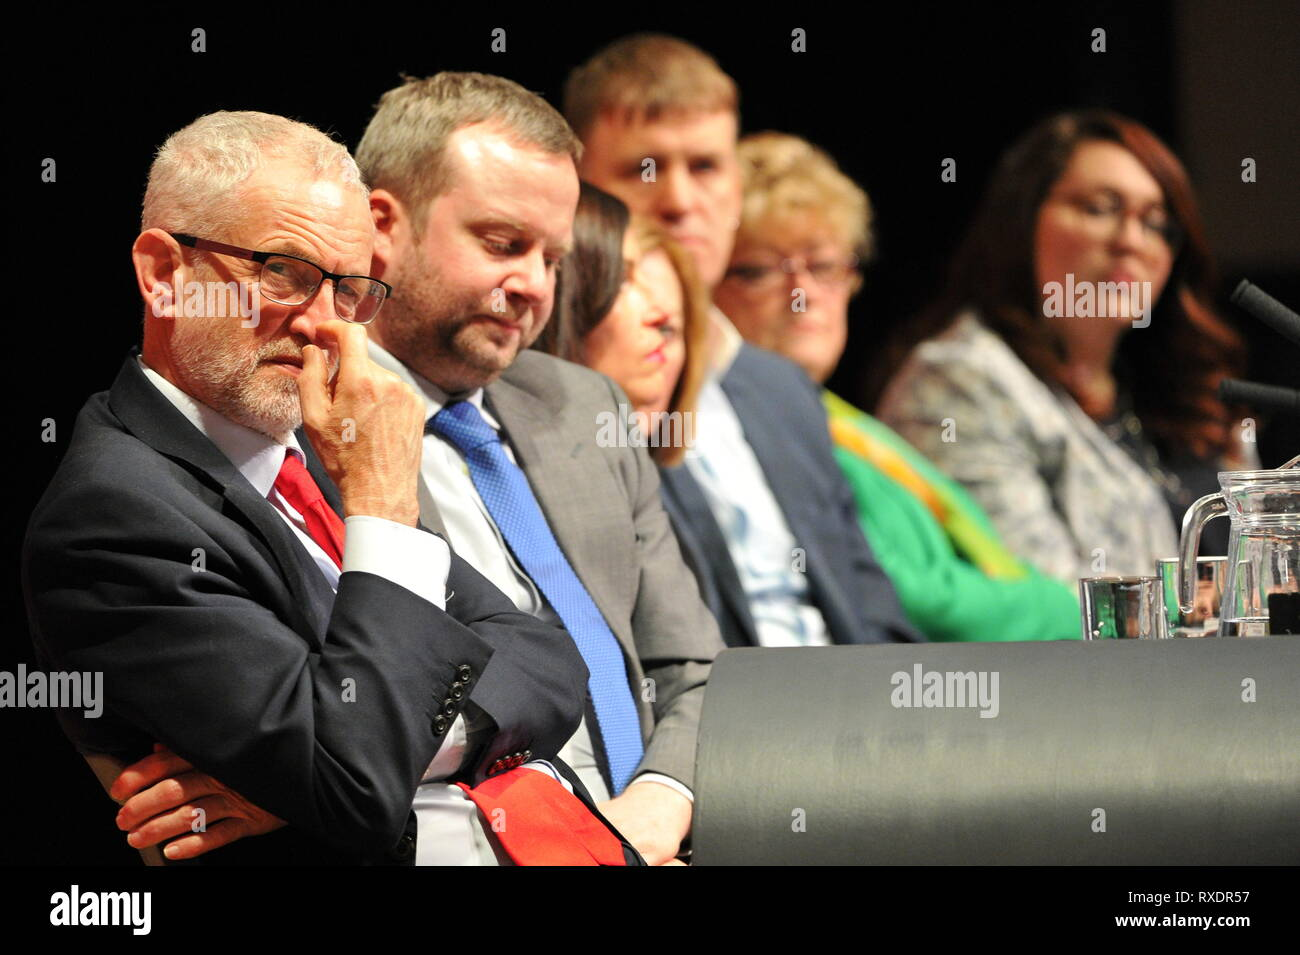 Dundee, UK. 9th Mar, 2019. Scottish Labour Leader - Richard Leonard addresses conference with his keynote speech. ( Pictured on the left is Jeremy Corbyn MP) Credit: Colin Fisher/Alamy Live News - Stock Image